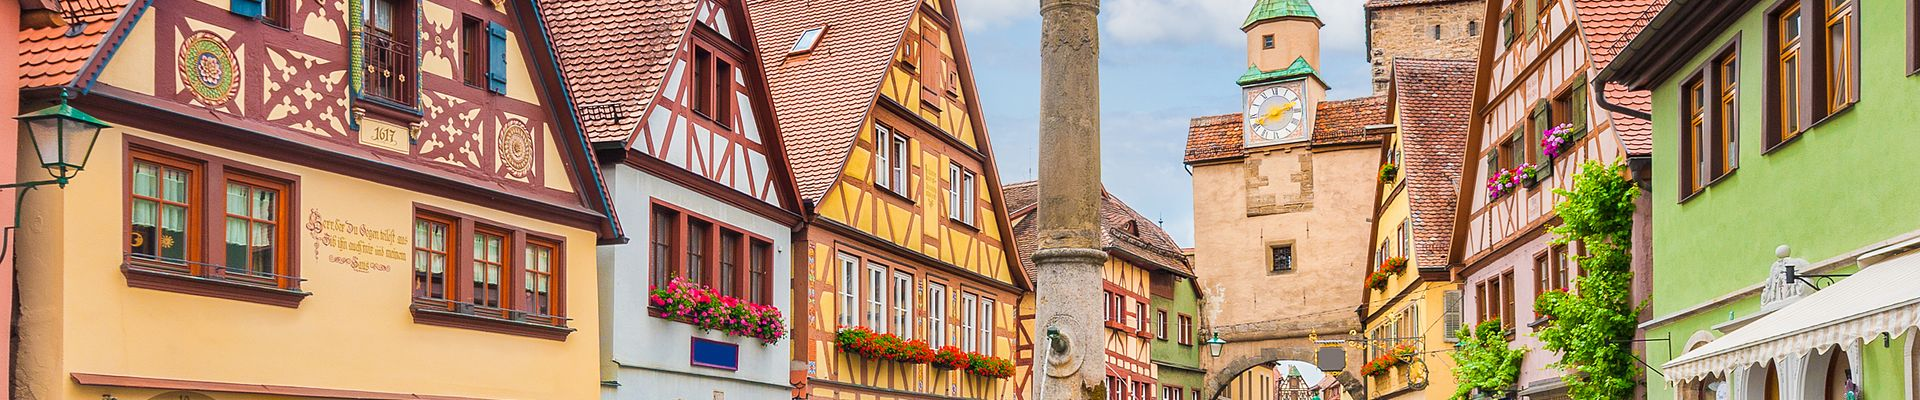 Wellnesshotels in Rothenburg ob der Tauber